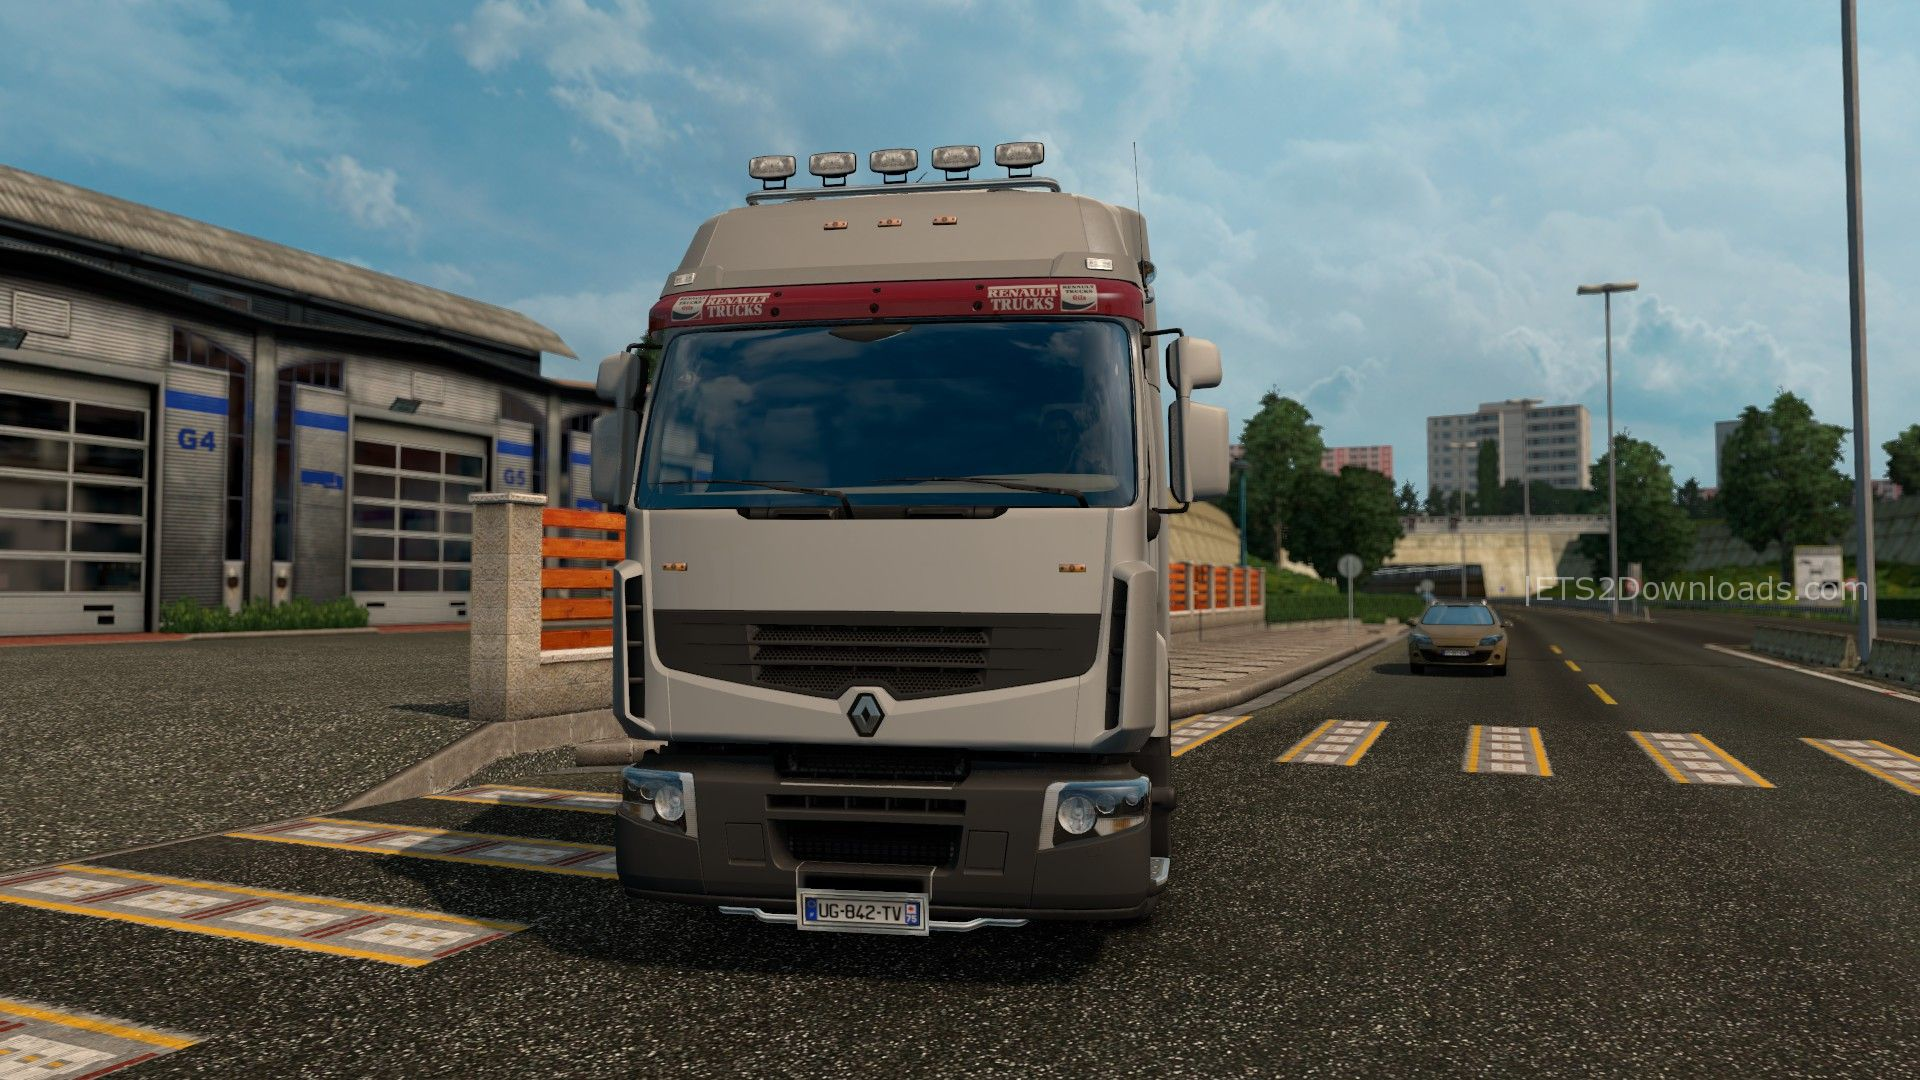 re-rendered-textures-tuning-parts-for-renault-premium